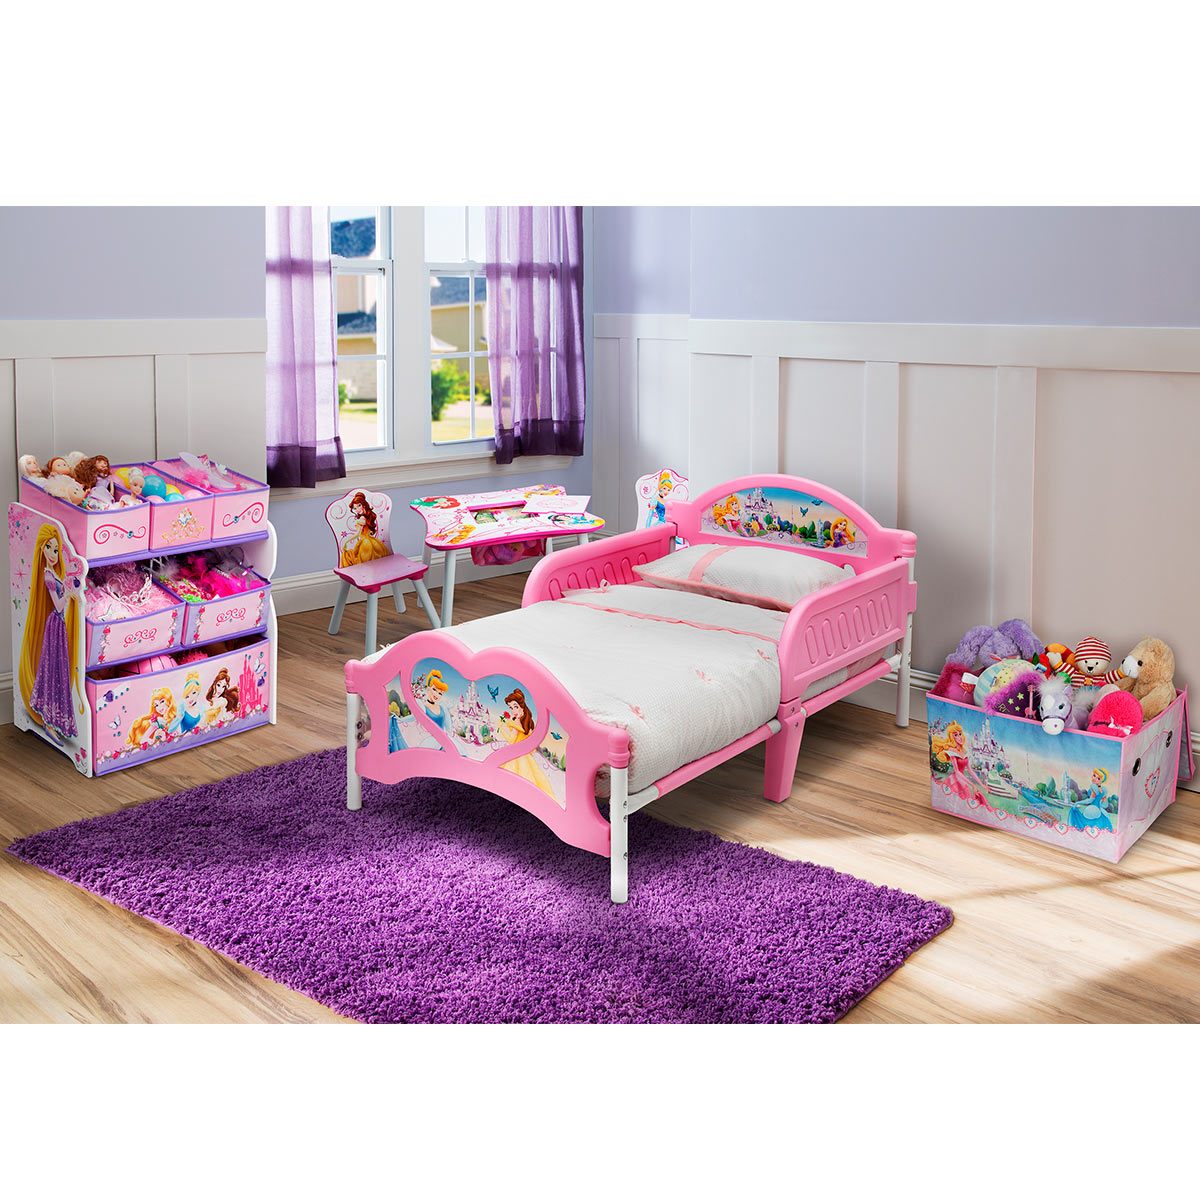 chambre princesse disney chambre princesse disney delta. Black Bedroom Furniture Sets. Home Design Ideas